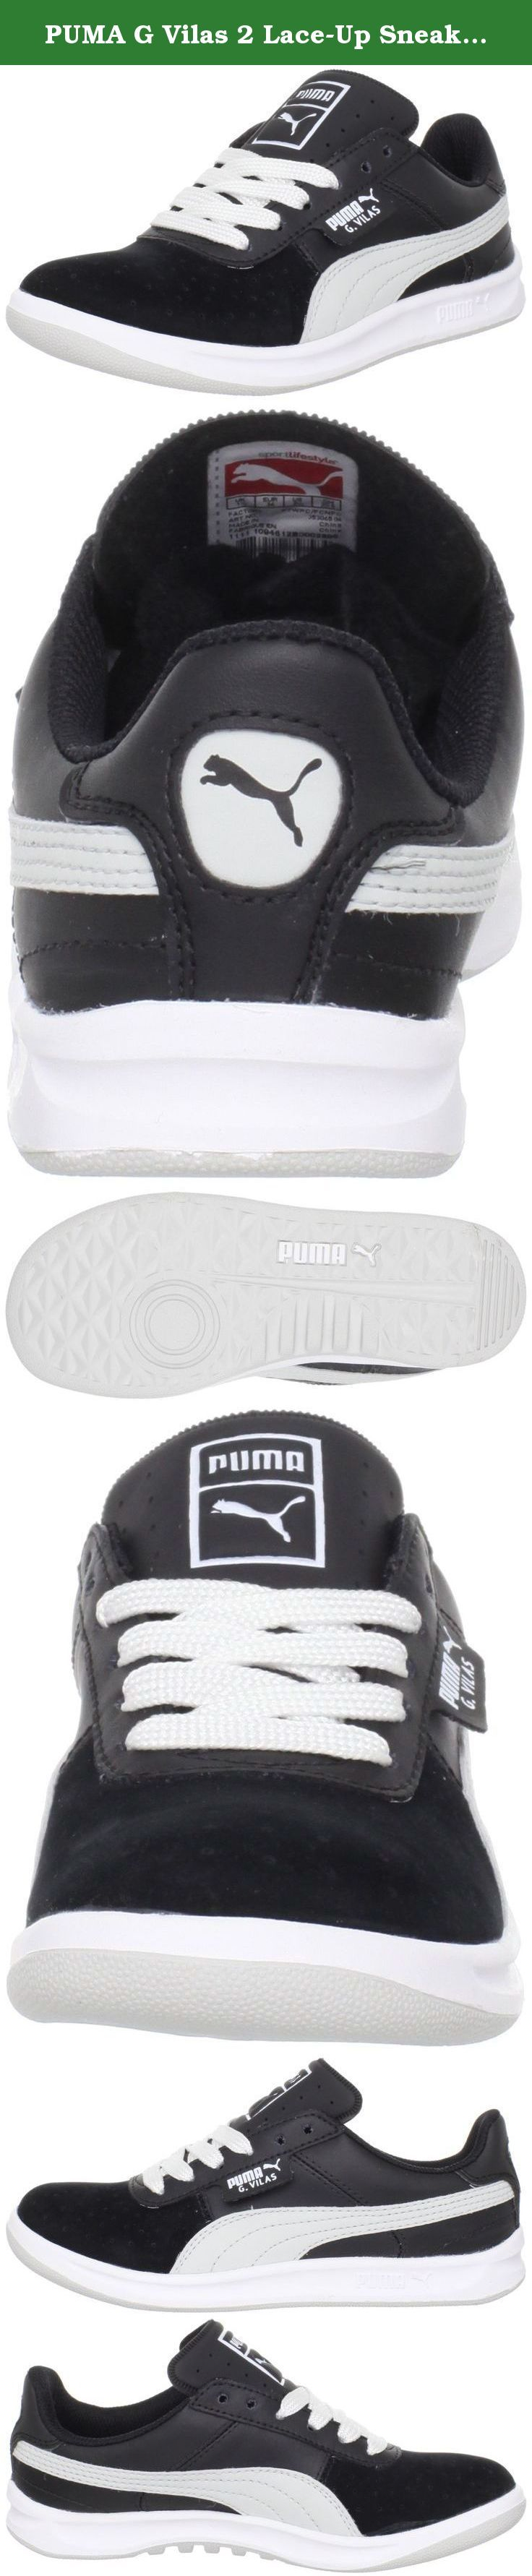 PUMA G Vilas 2 Lace-Up Sneaker (Little Kid/Big Kid),Black/Gray Violet/White,4.5 M US Big Kid. PUMA Youth G Vilas 2 Jr Features shoes from the 1982 PUMA® archive. A re-issue worn by the legendary Guillermo Vilas throughout his phenomenal tennis career. Simple and clean leather upper. Lightly padded collar. Detailed, perforated pattern on toe box. Fabric lining with cushioned footbed for added comfort. A minimized low profile, sculpted PU midsole. Rubber outsole. Measurements: Weight: 8 oz...